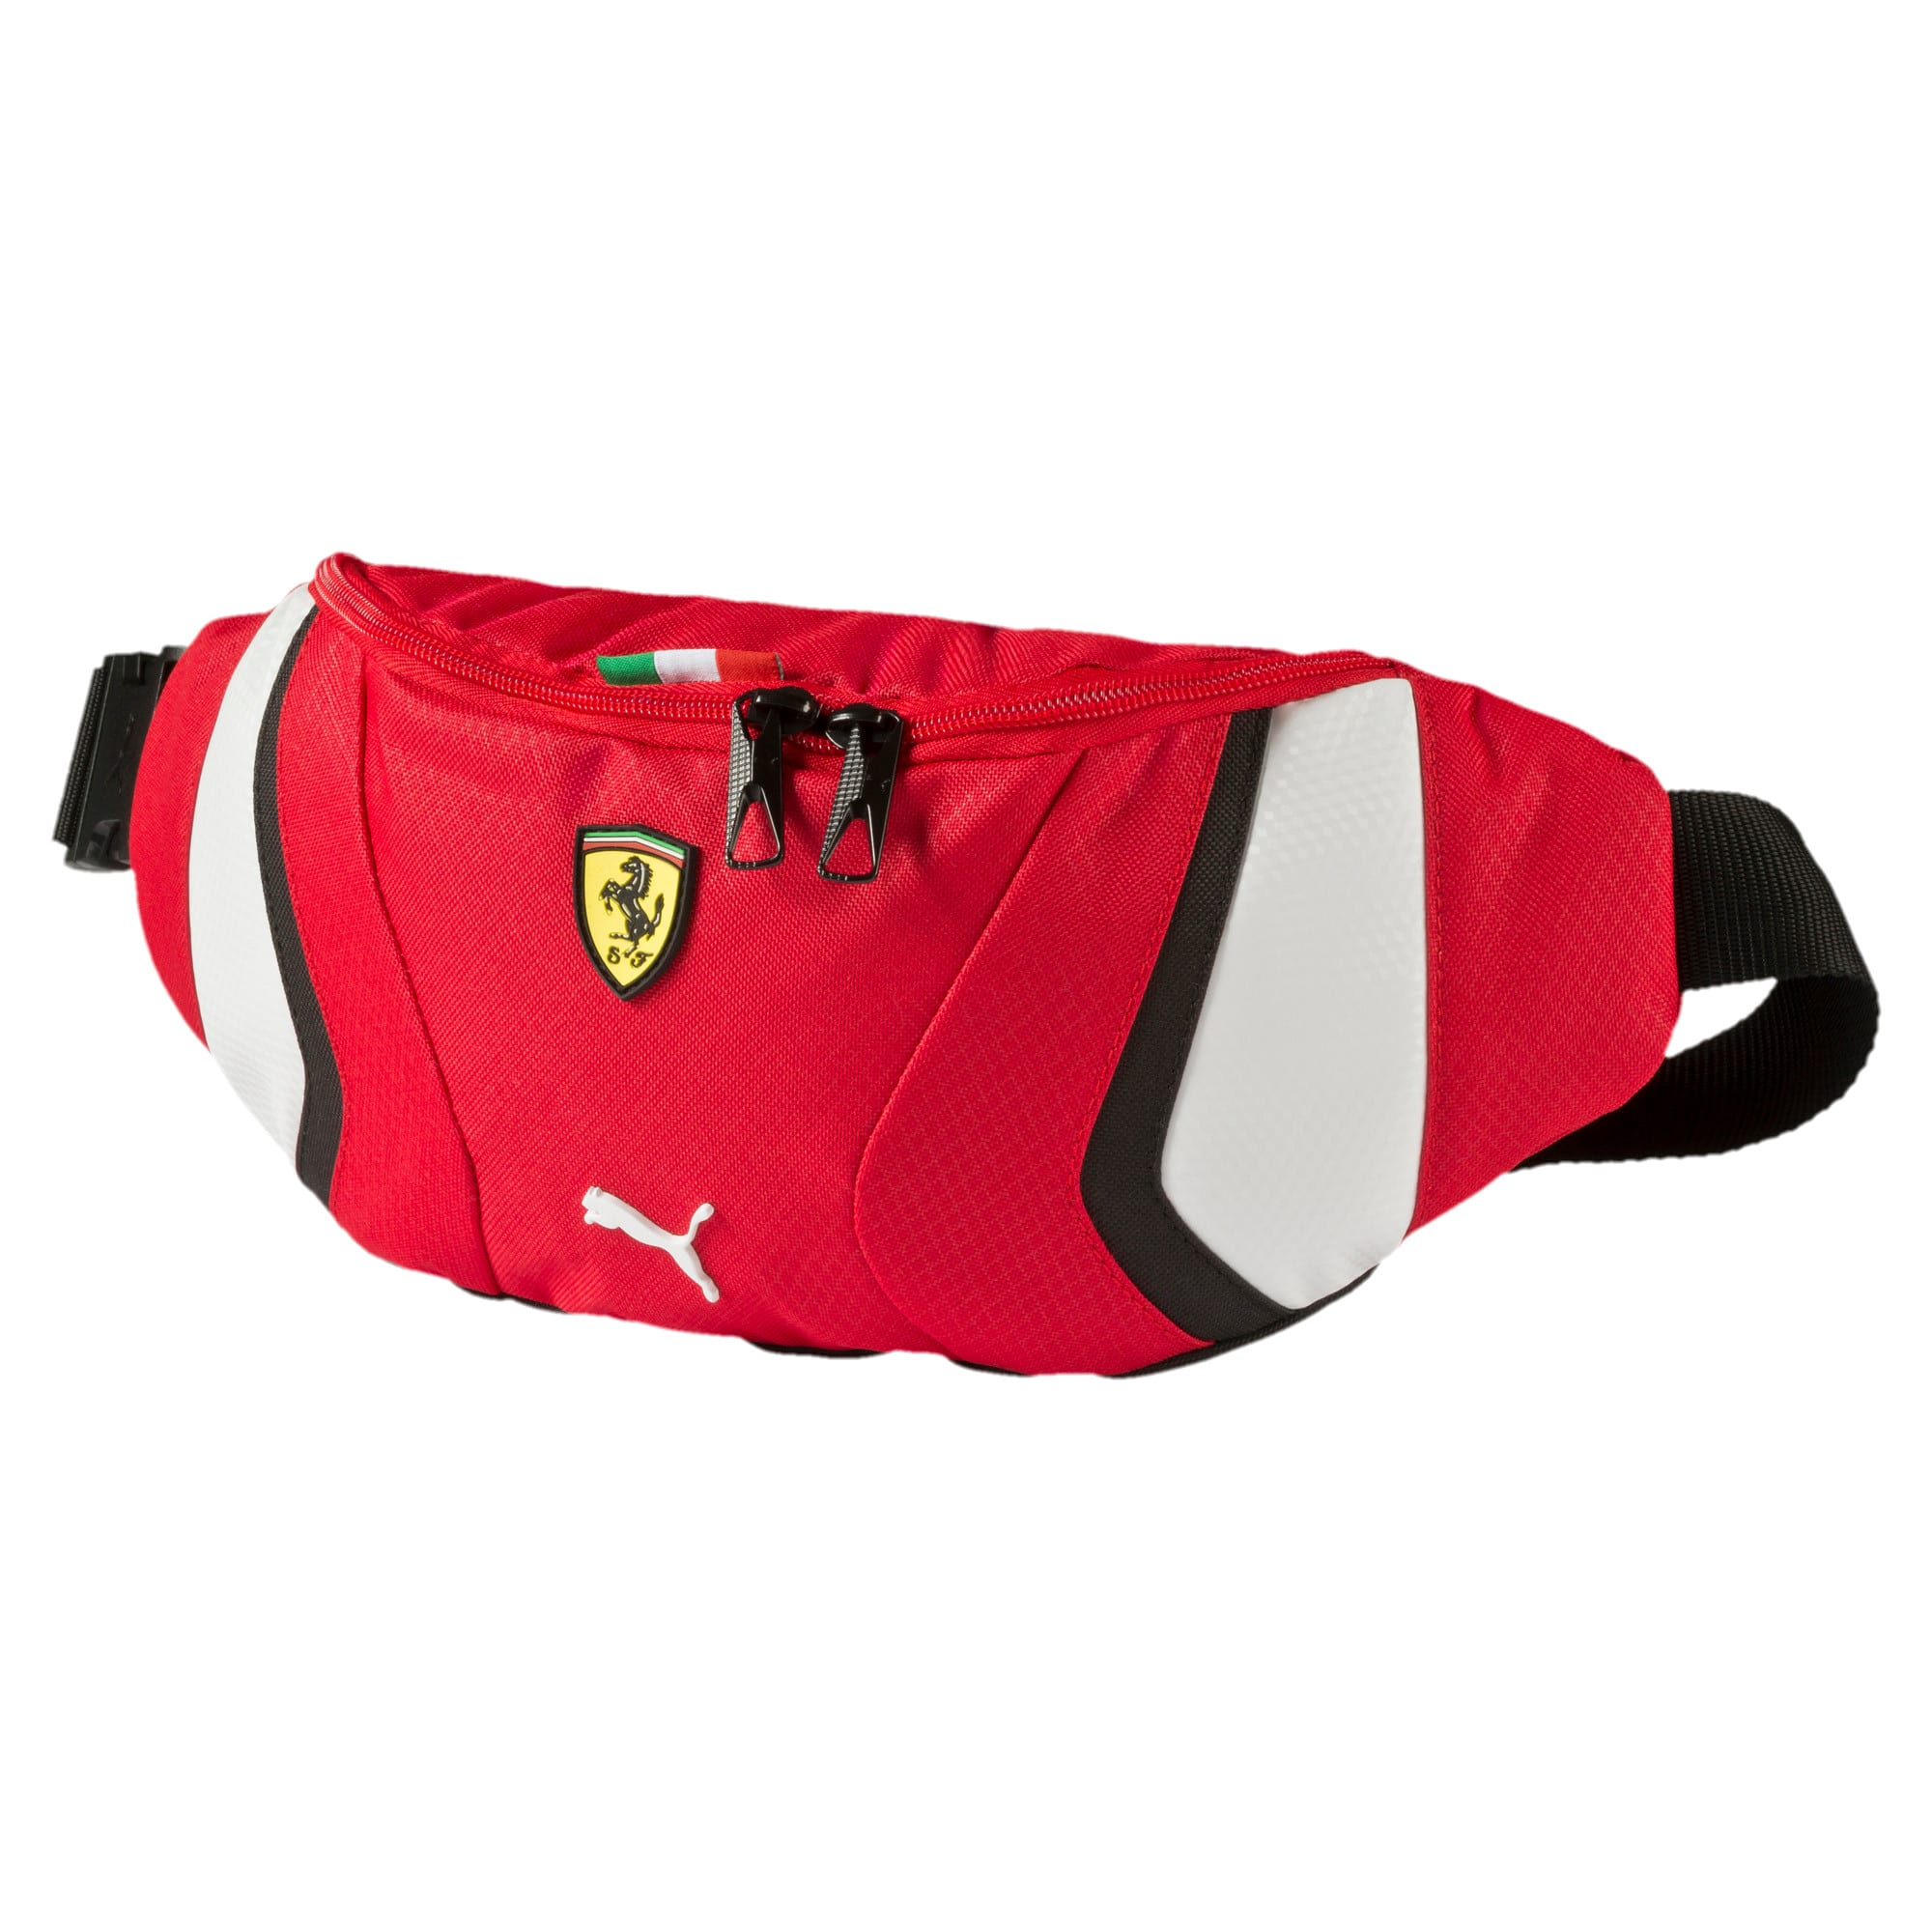 Thumbnail 1 of Ferrari Replica Waist Bag, rosso corsa-white-black, medium-IND